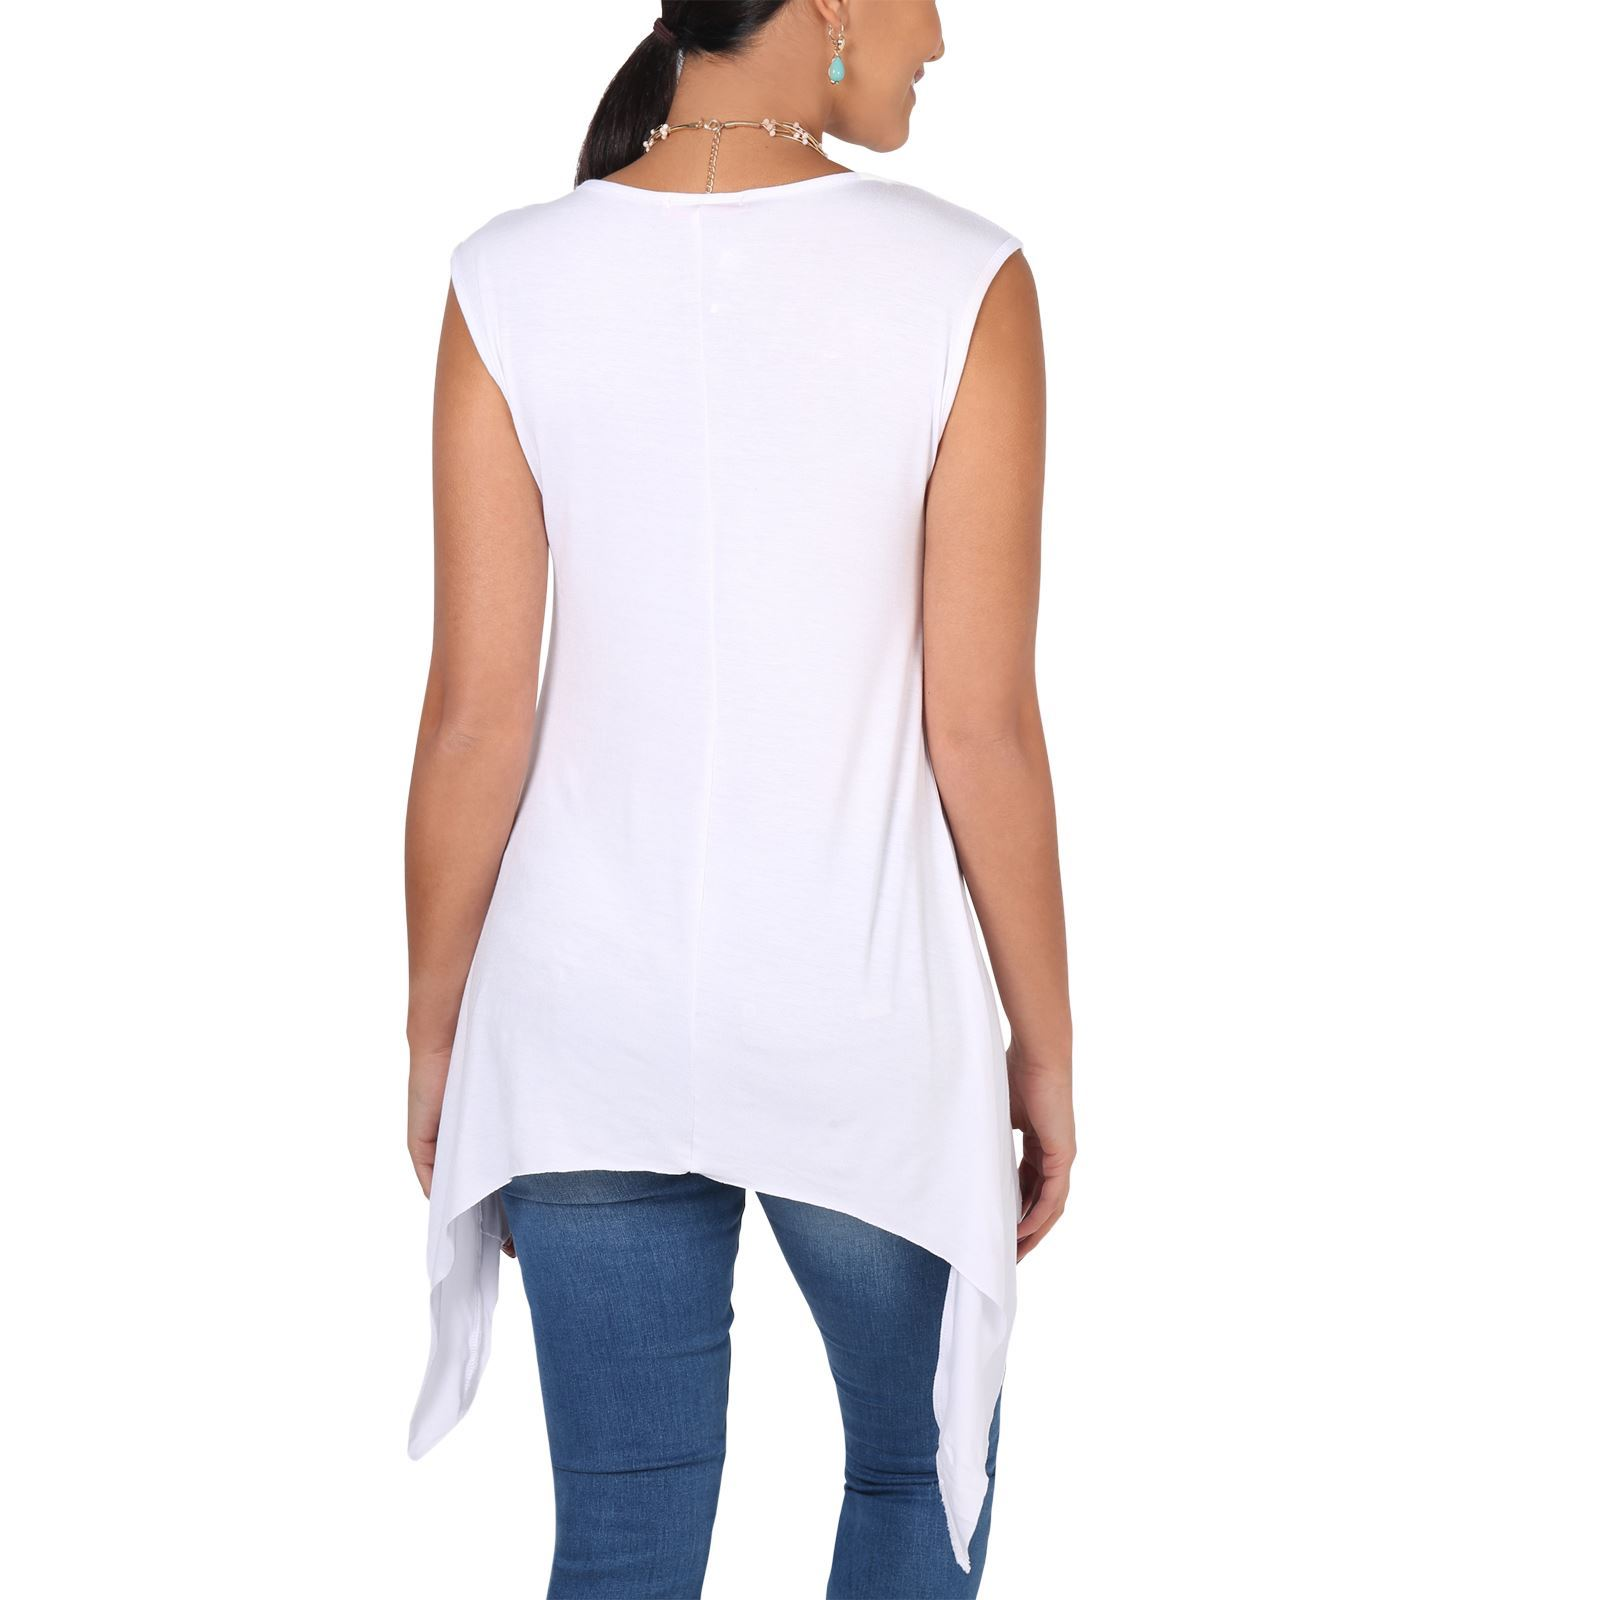 Women-Long-Top-Sleeveless-Pleated-Tee-Shirt-Tunic-Jersey-Stretch-Loose-Fit thumbnail 32